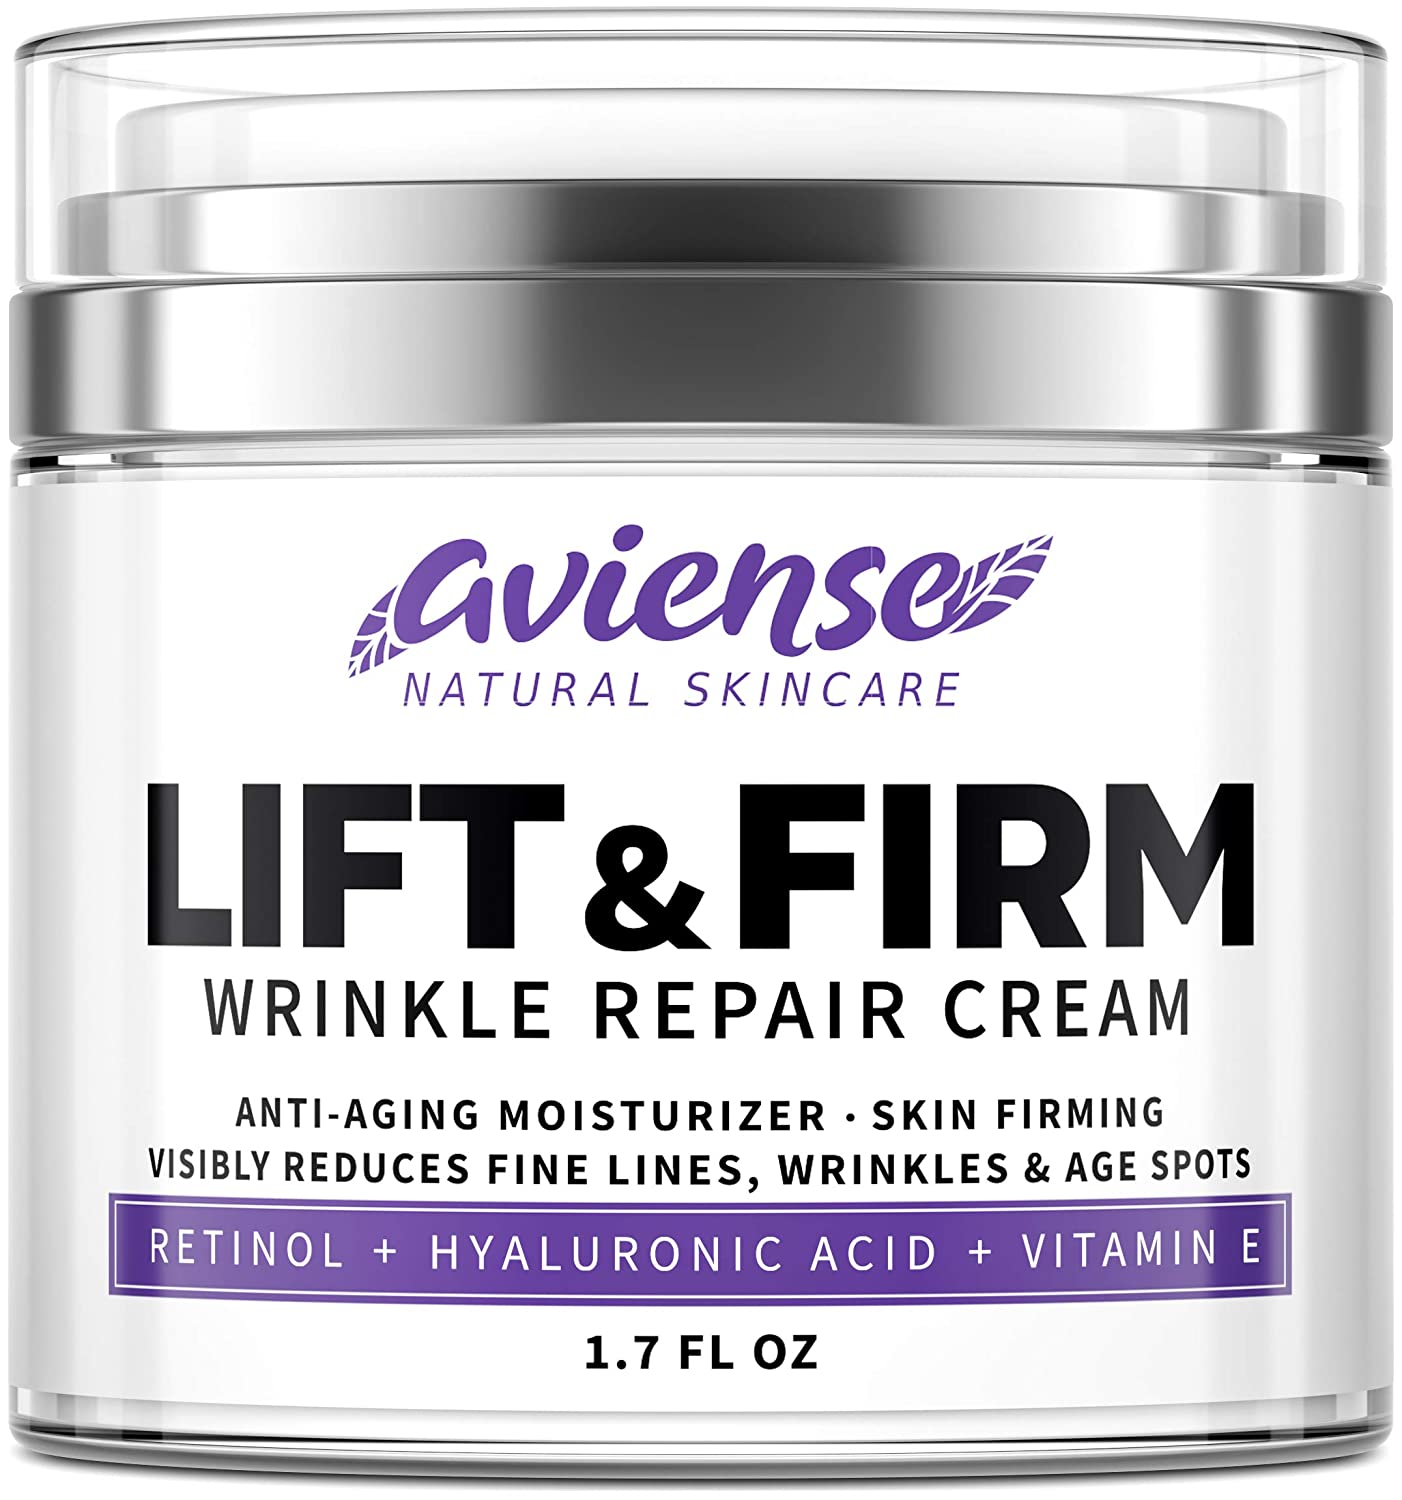 Anti Wrinkle Cream for Face - Retinol & Collagen Anti Aging Cream - Made in USA - Fine Lines & Wrinkle Repair - Retinol Cream for Face with Hyaluronic Acid & Vitamin E - Face Moisturizer for Women & Men